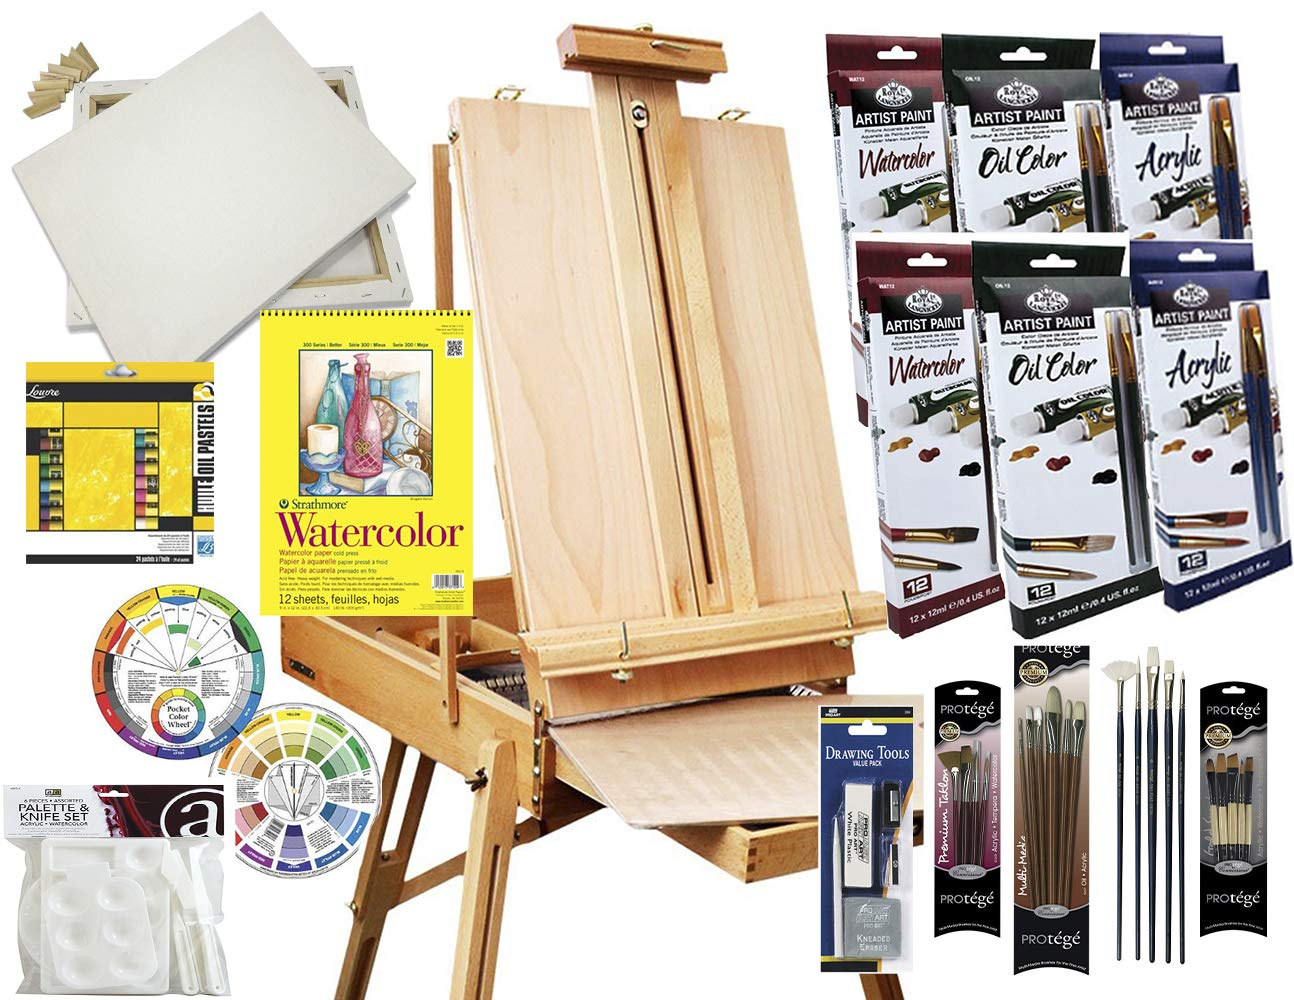 Artist Painting Set W/Table-Top & Full Easel, Art Painting Brushes, Paint Tubes, Painting Pads, Stretched Canvas, Painting Knives for Oil, Watercolor, Acrylic Painting & Art Sketch by French Easels